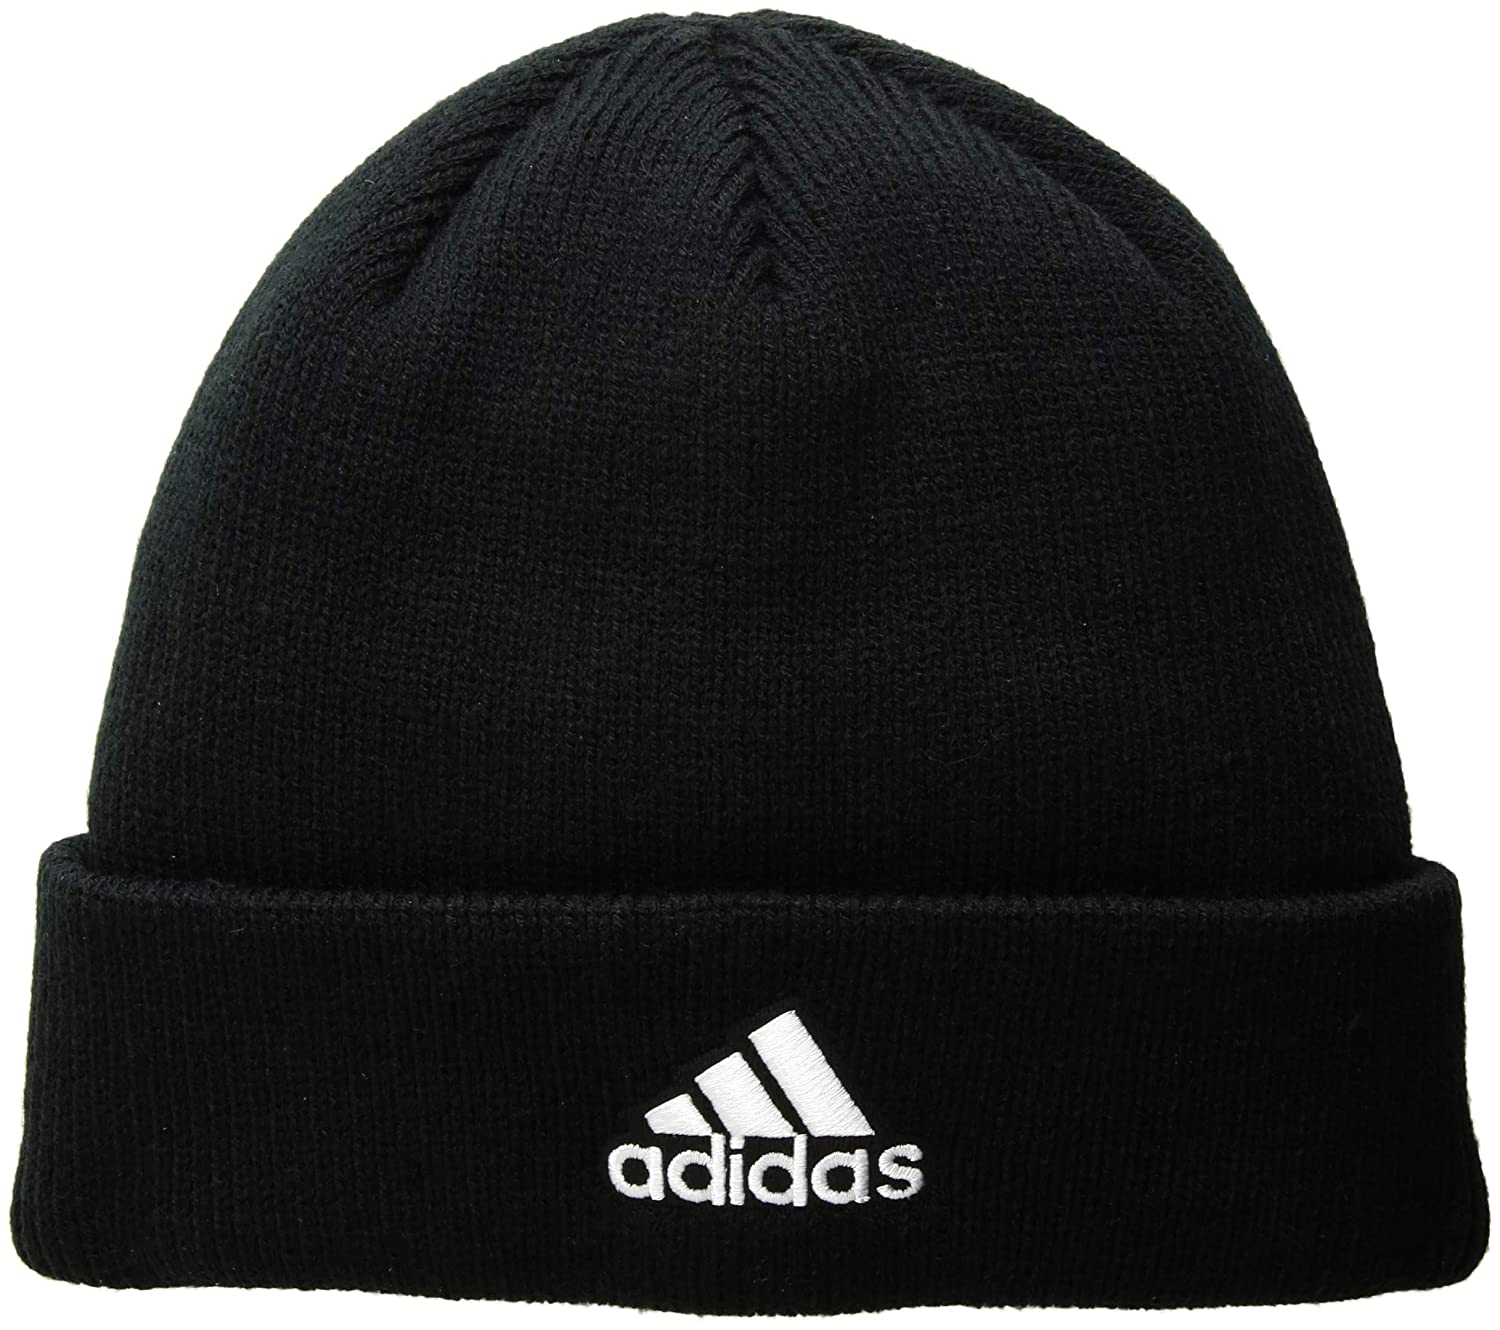 05a08b20 Amazon.com: adidas Men's Team Issue Fold Beanie, Black/White, One Size:  Clothing